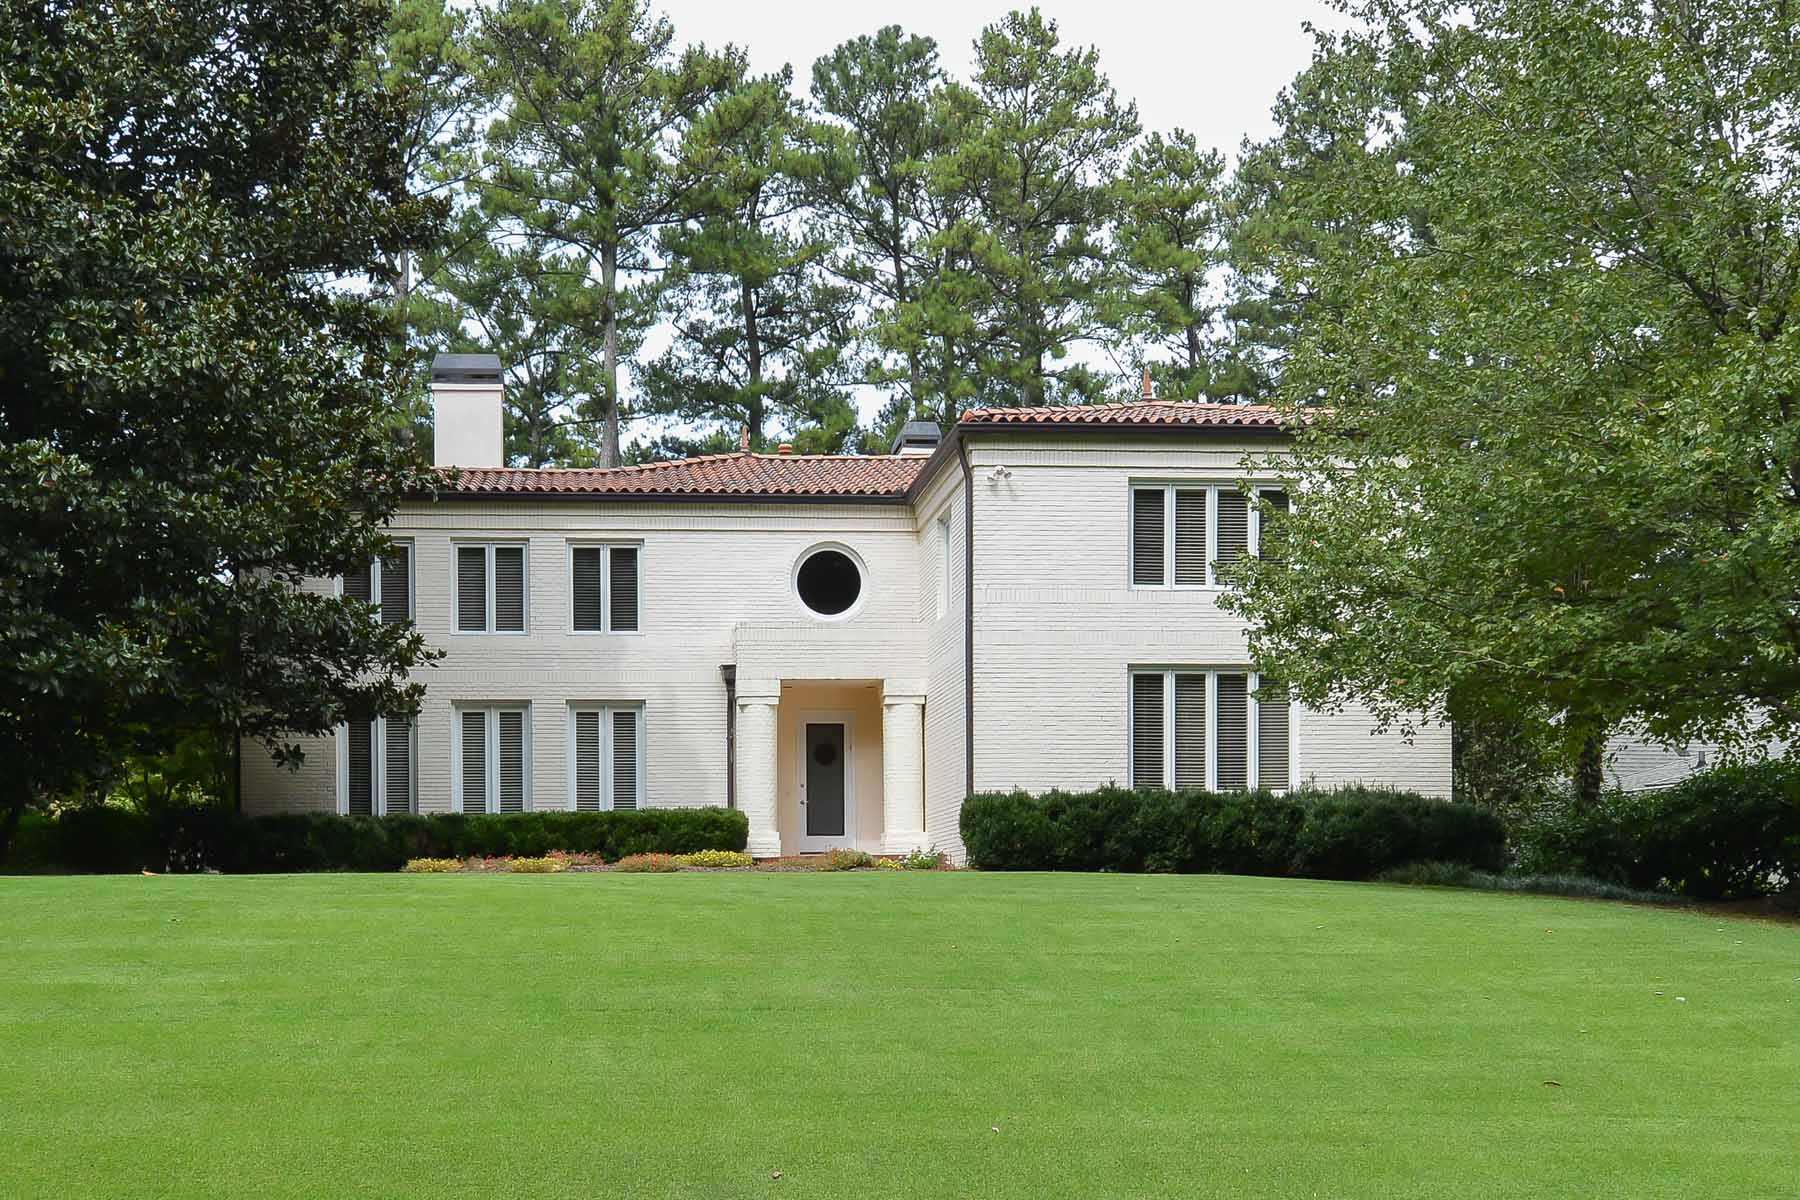 Casa Unifamiliar por un Venta en Stunning Morningside landmark residence. 1676 W Sussex Road NE Atlanta, Georgia 30306 Estados Unidos